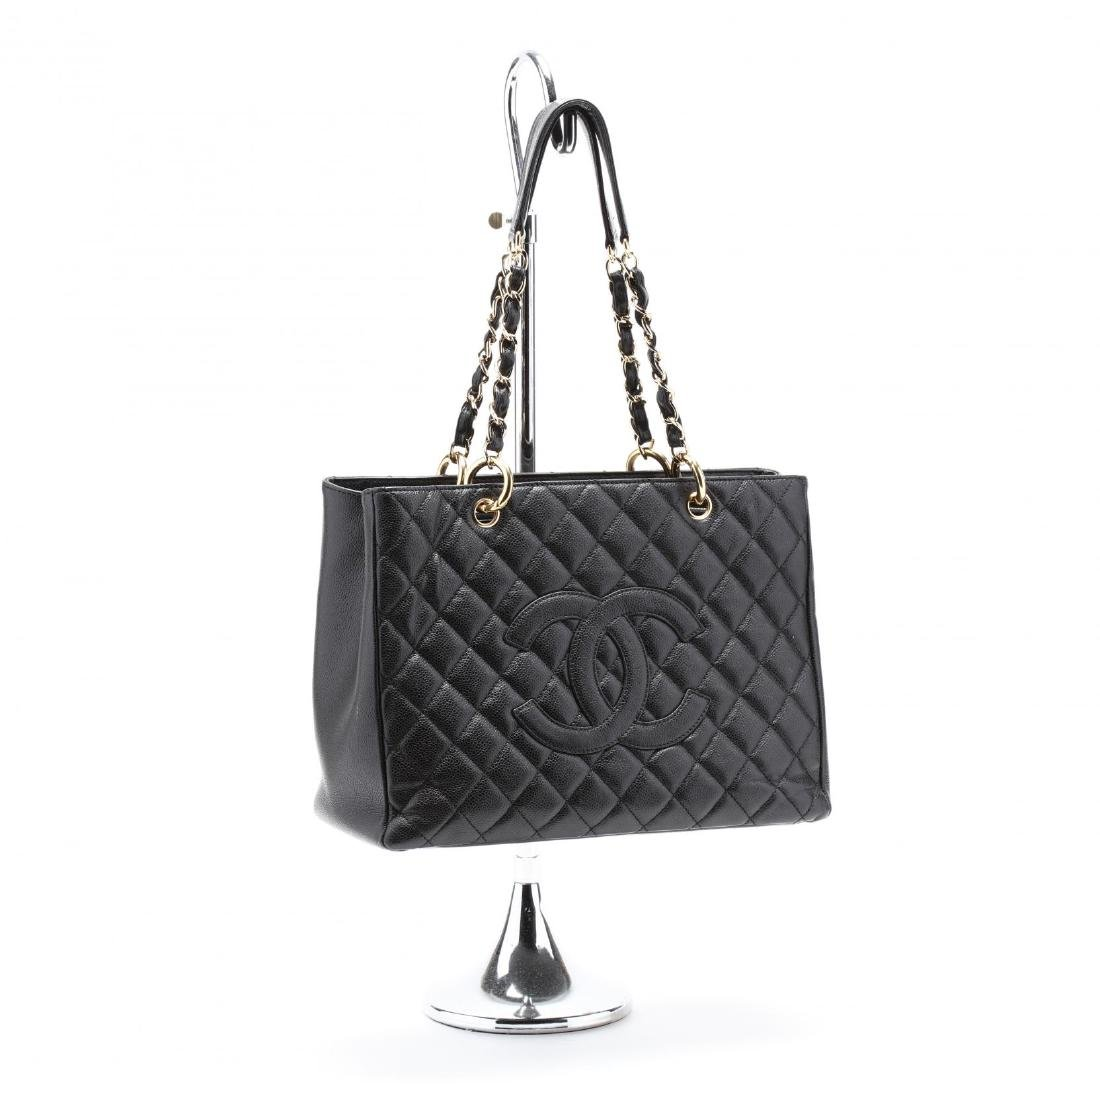 Quilted Black Caviar Leather Grand Shopping Tote